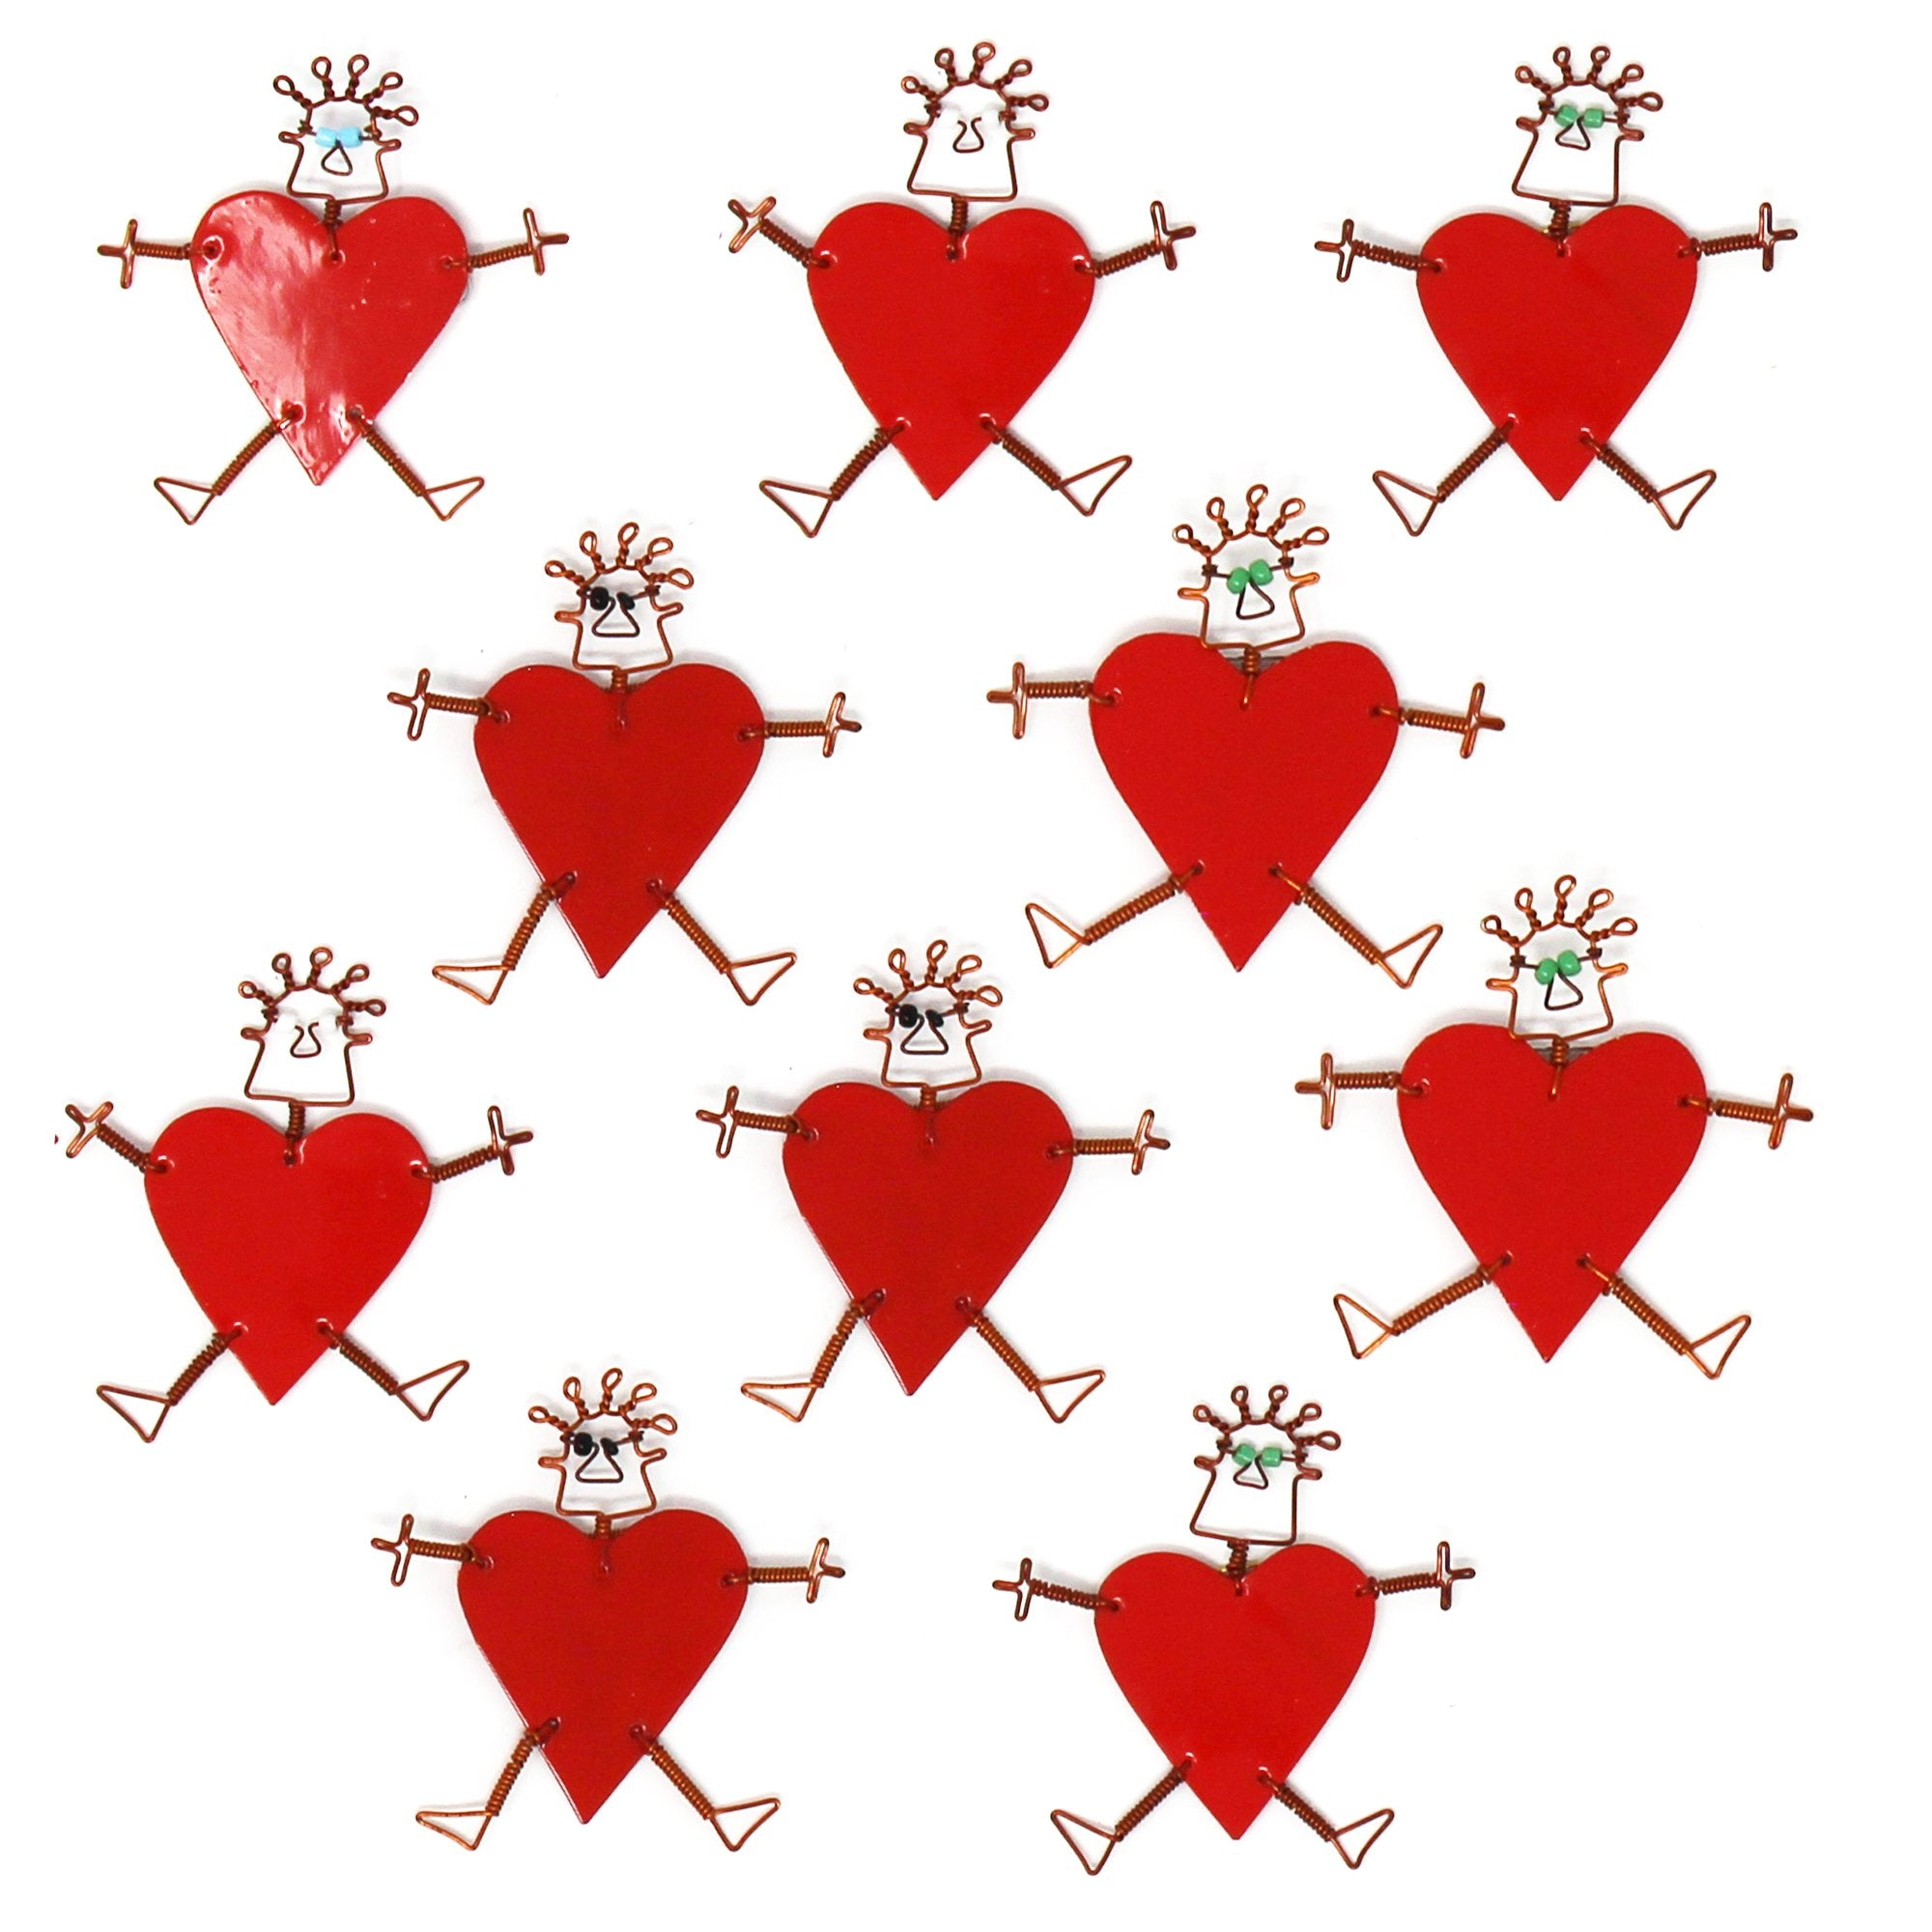 Set of 10 Dancing Girl Heart Body Pins in Red - Creative Alternatives